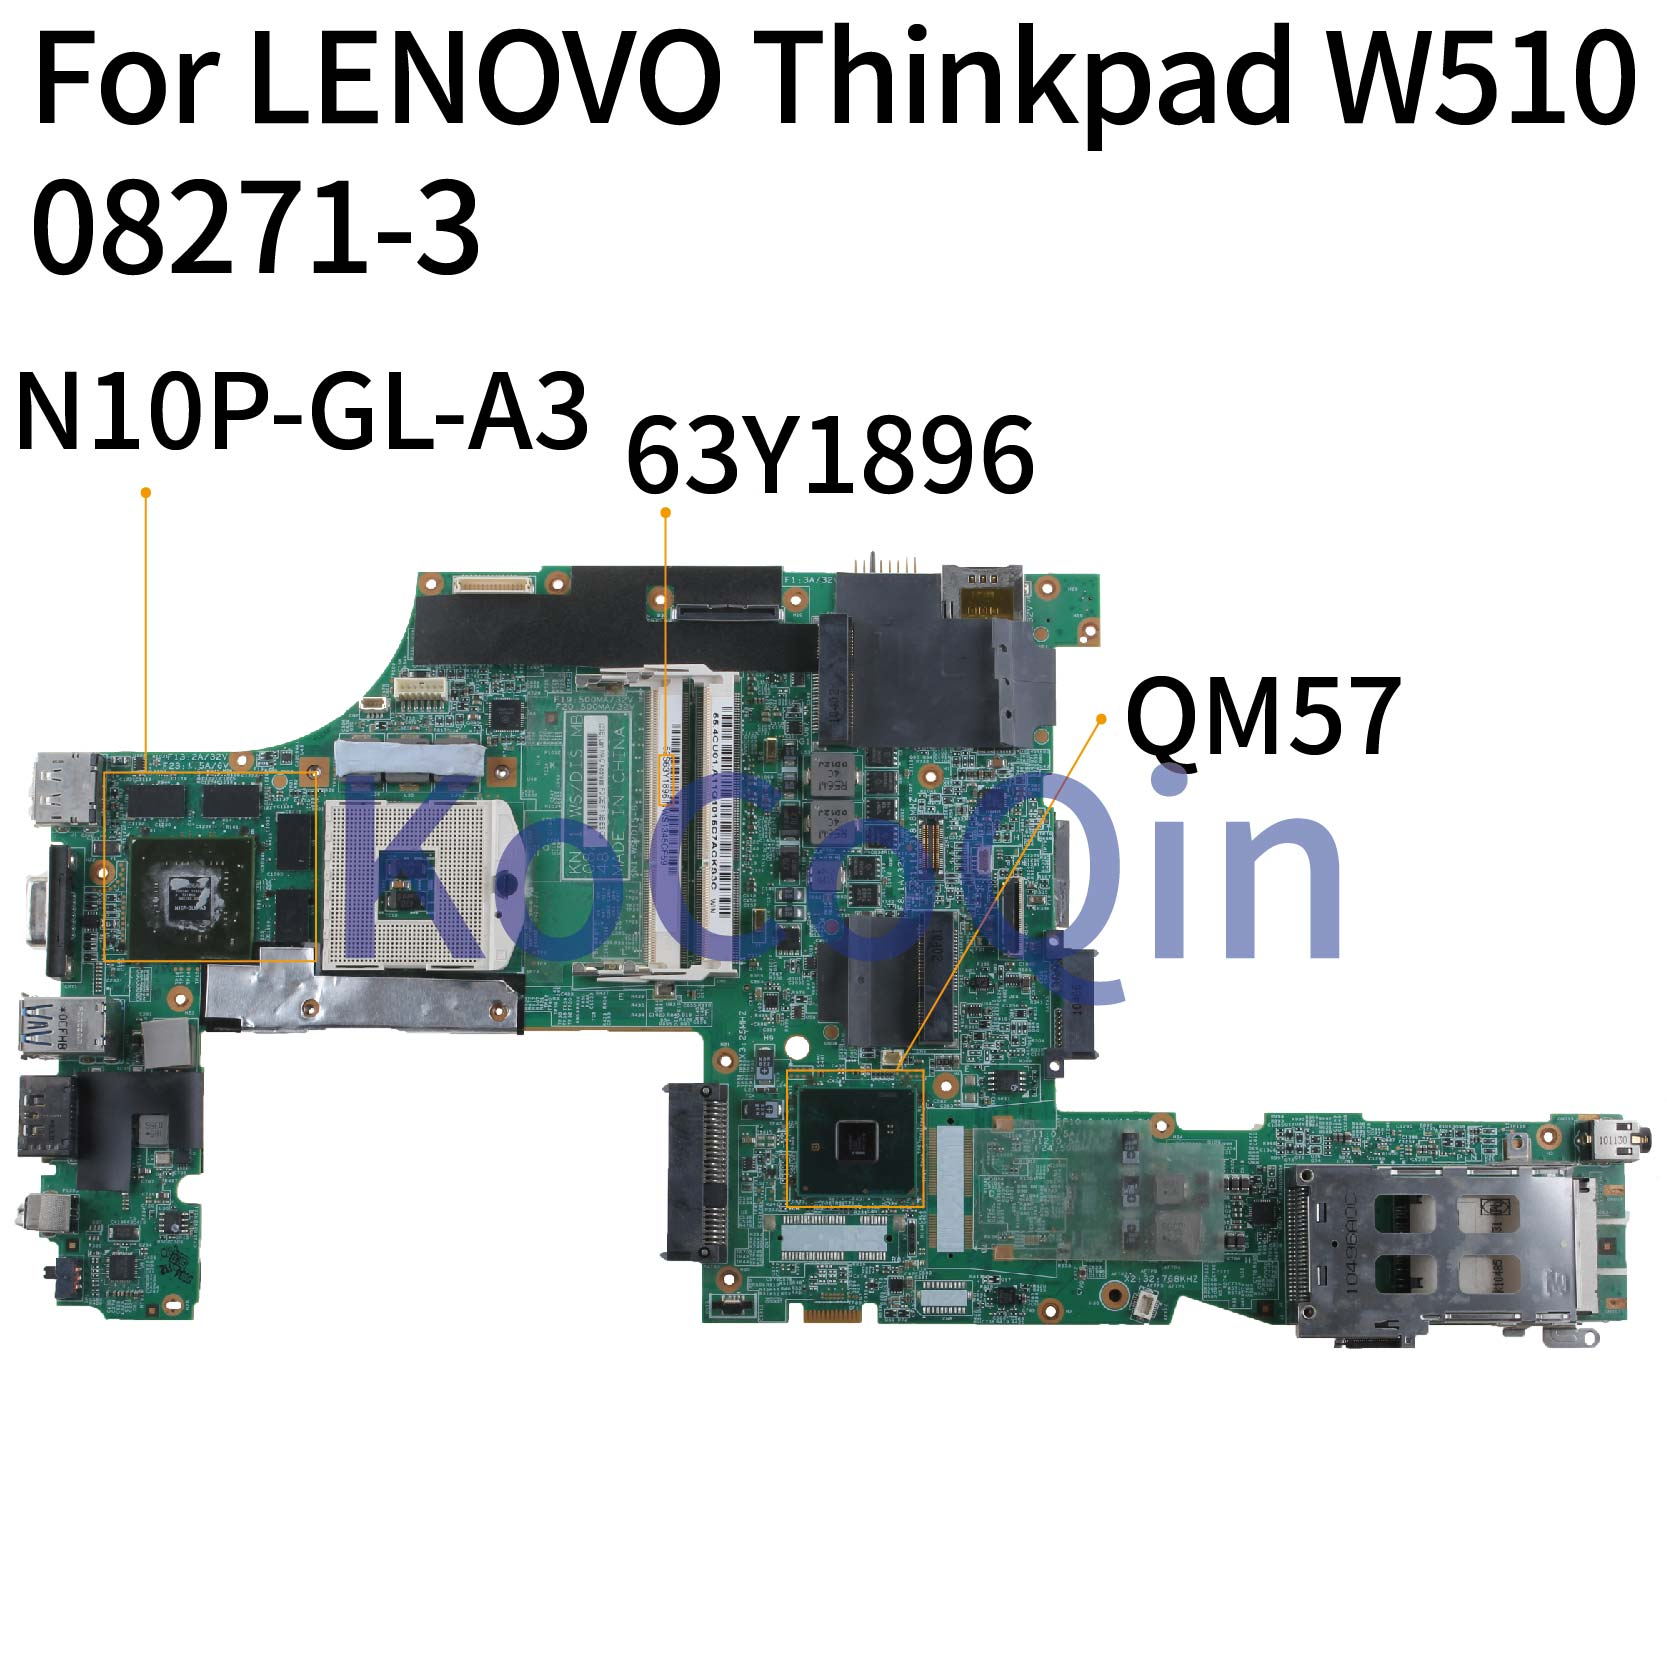 KoCoQin laptop Motherboard For LENOVO Thinkpad W510 Mainboard 63Y1896 63Y1551 63Y2022 75Y4115 08271 3 48.4CU14.0 QM57 N10P GL A3